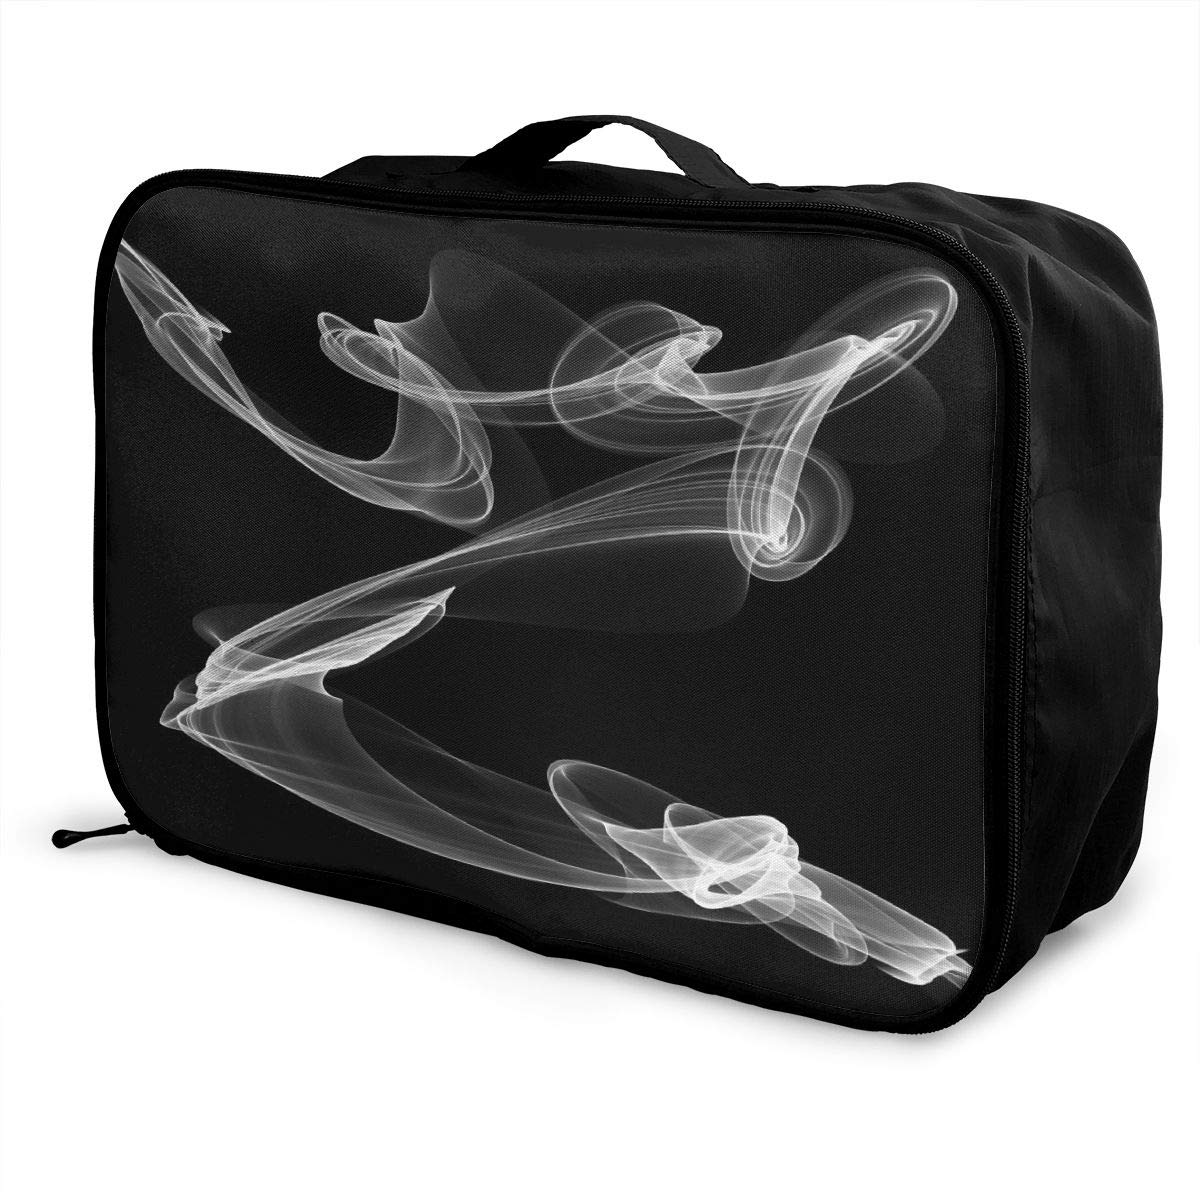 Artistic Swirl Color Travel Lightweight Waterproof Foldable Storage Carry Luggage Large Capacity Portable Luggage Bag Duffel Bag